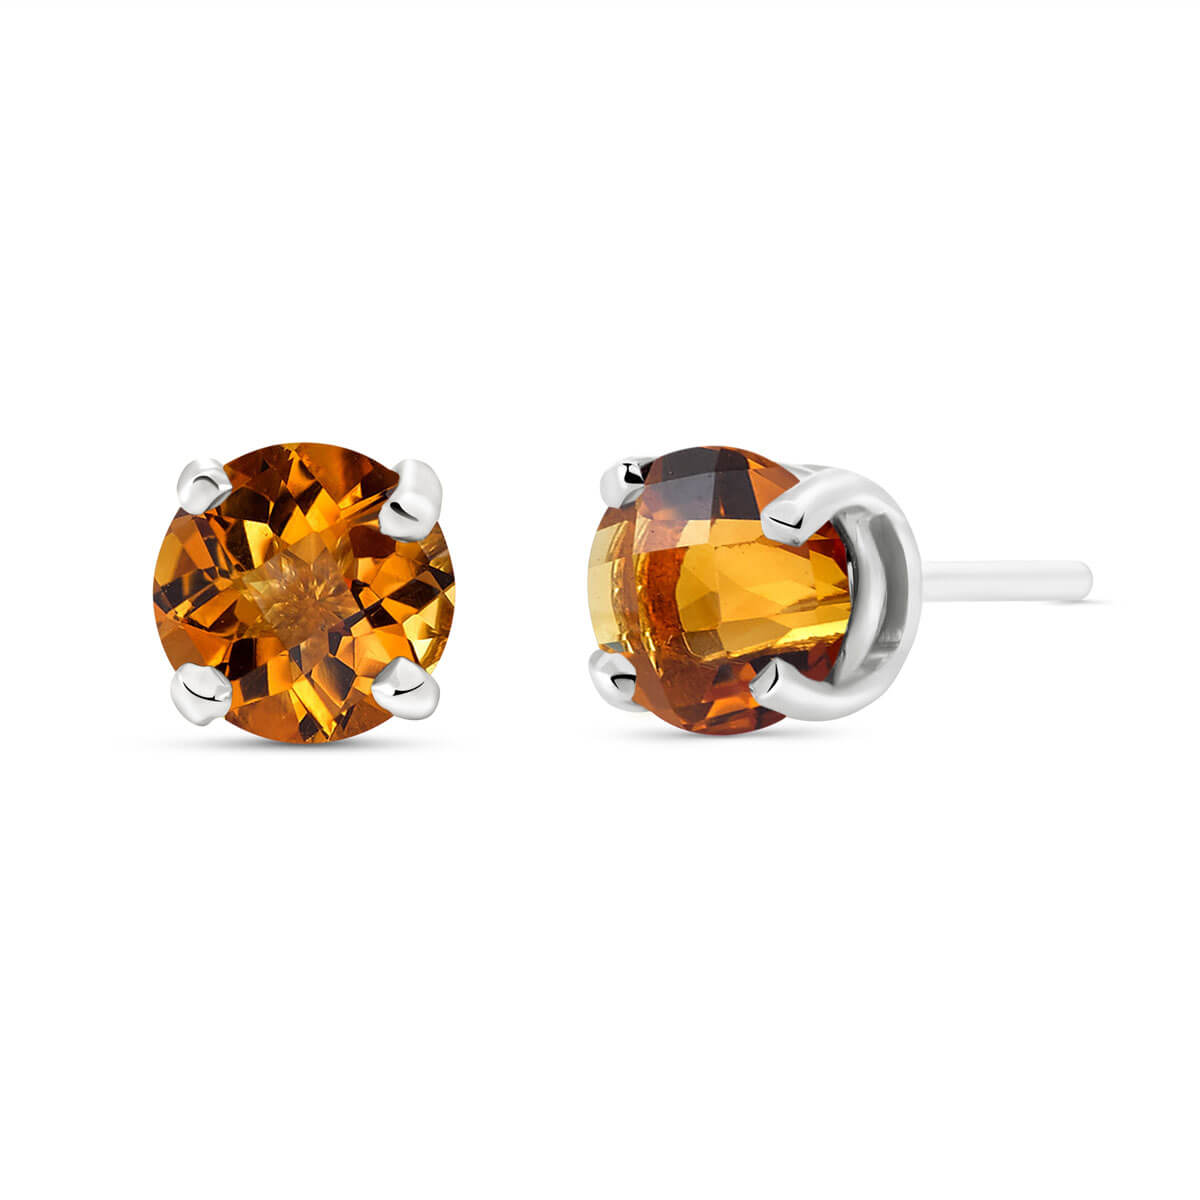 Citrine Stud Earrings 0.95 ctw in 9ct White Gold